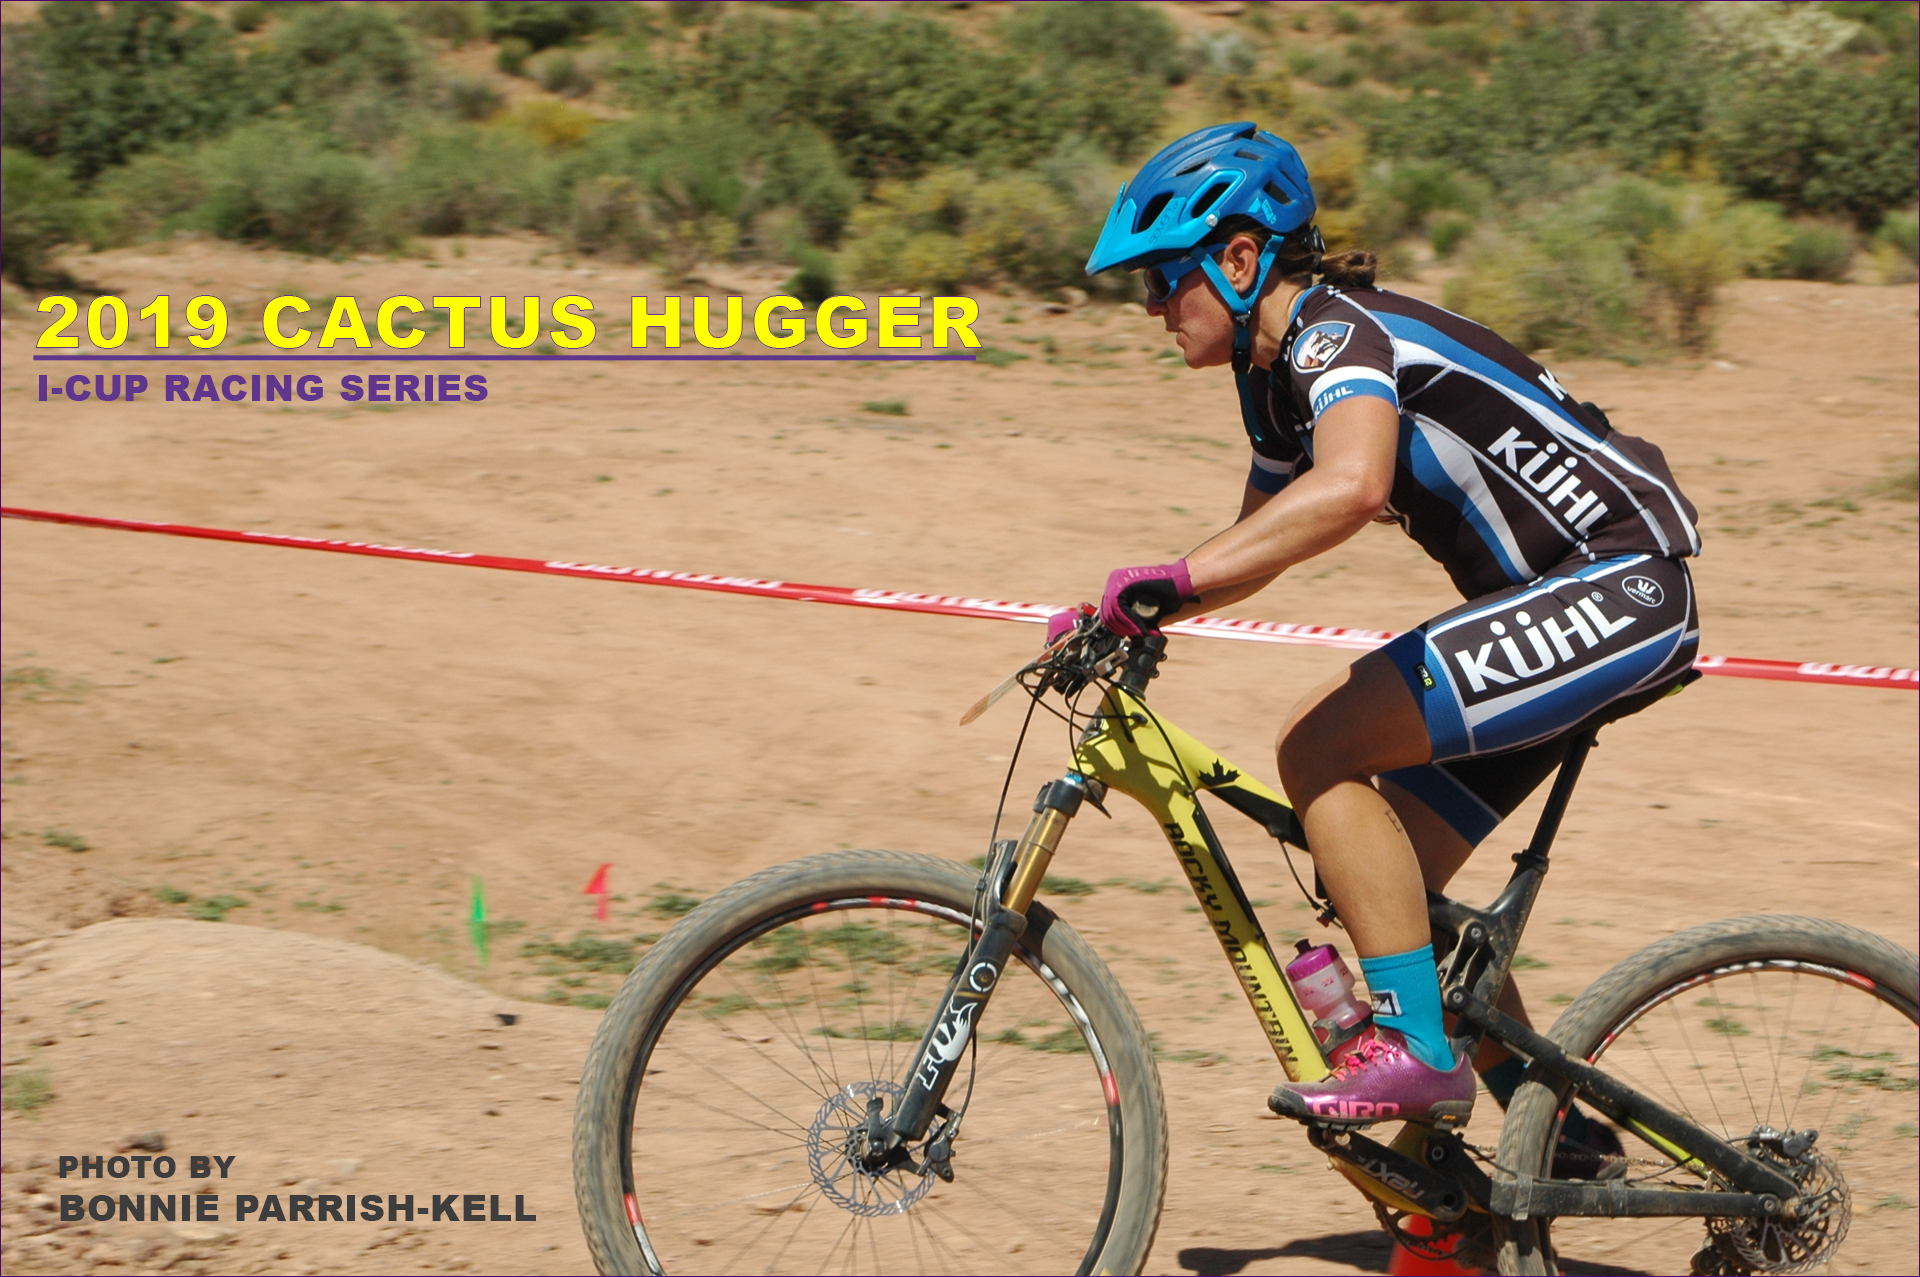 elite woman racing 2019 Cactus Hugger mountain bike race